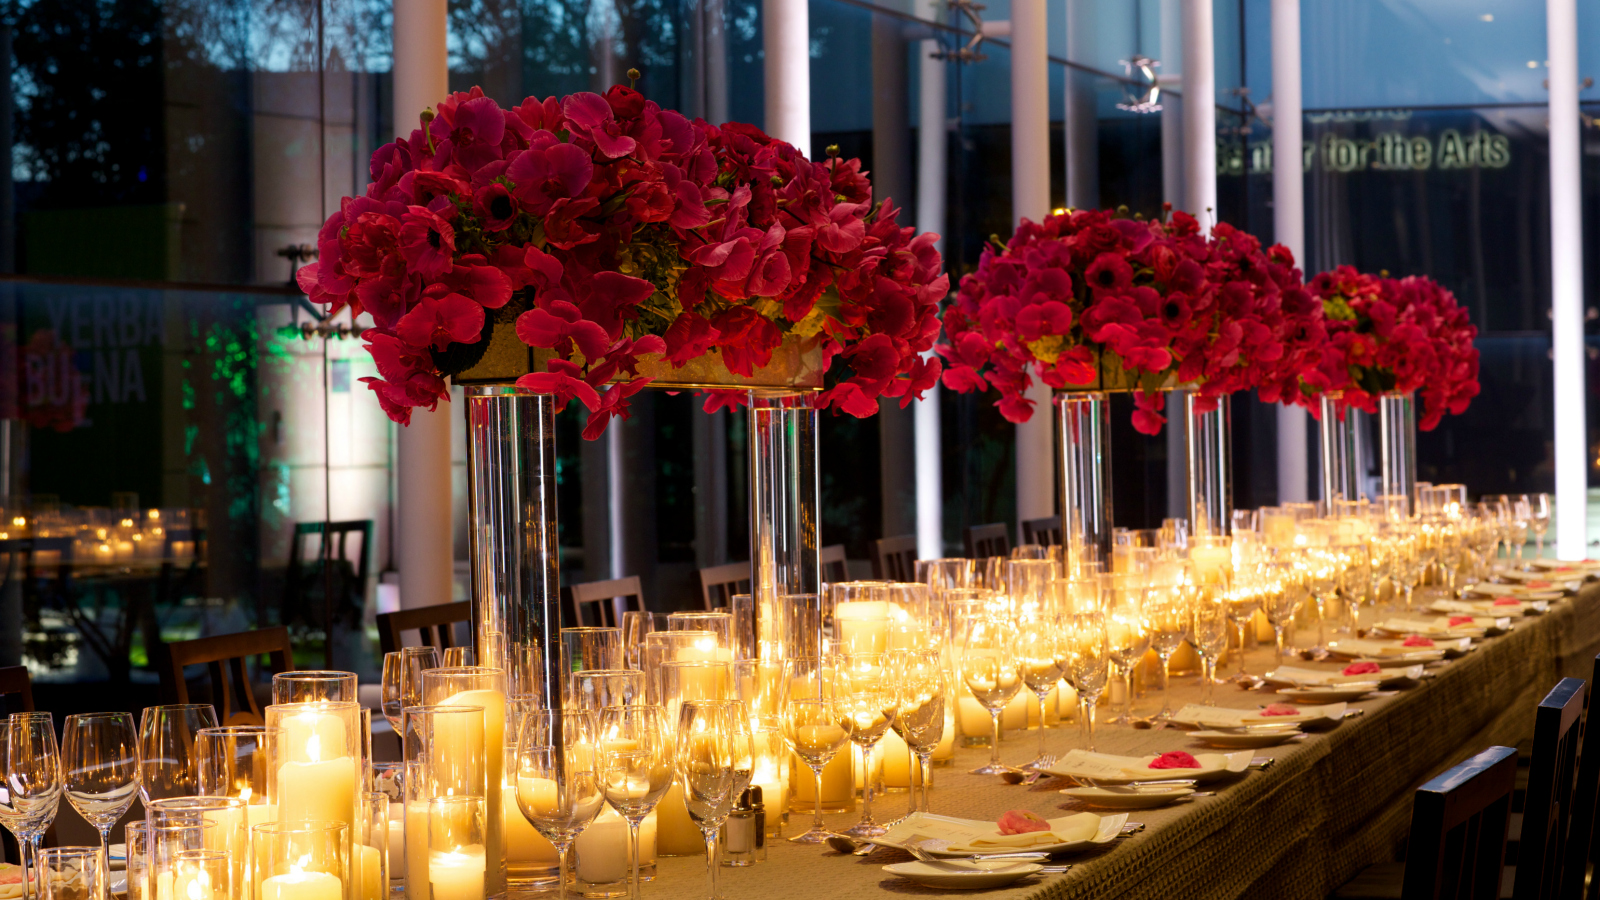 Impeccable floral arrangements and subtly lit candles set as centerpieces along an inviting wedding table at the St. Regis hotel